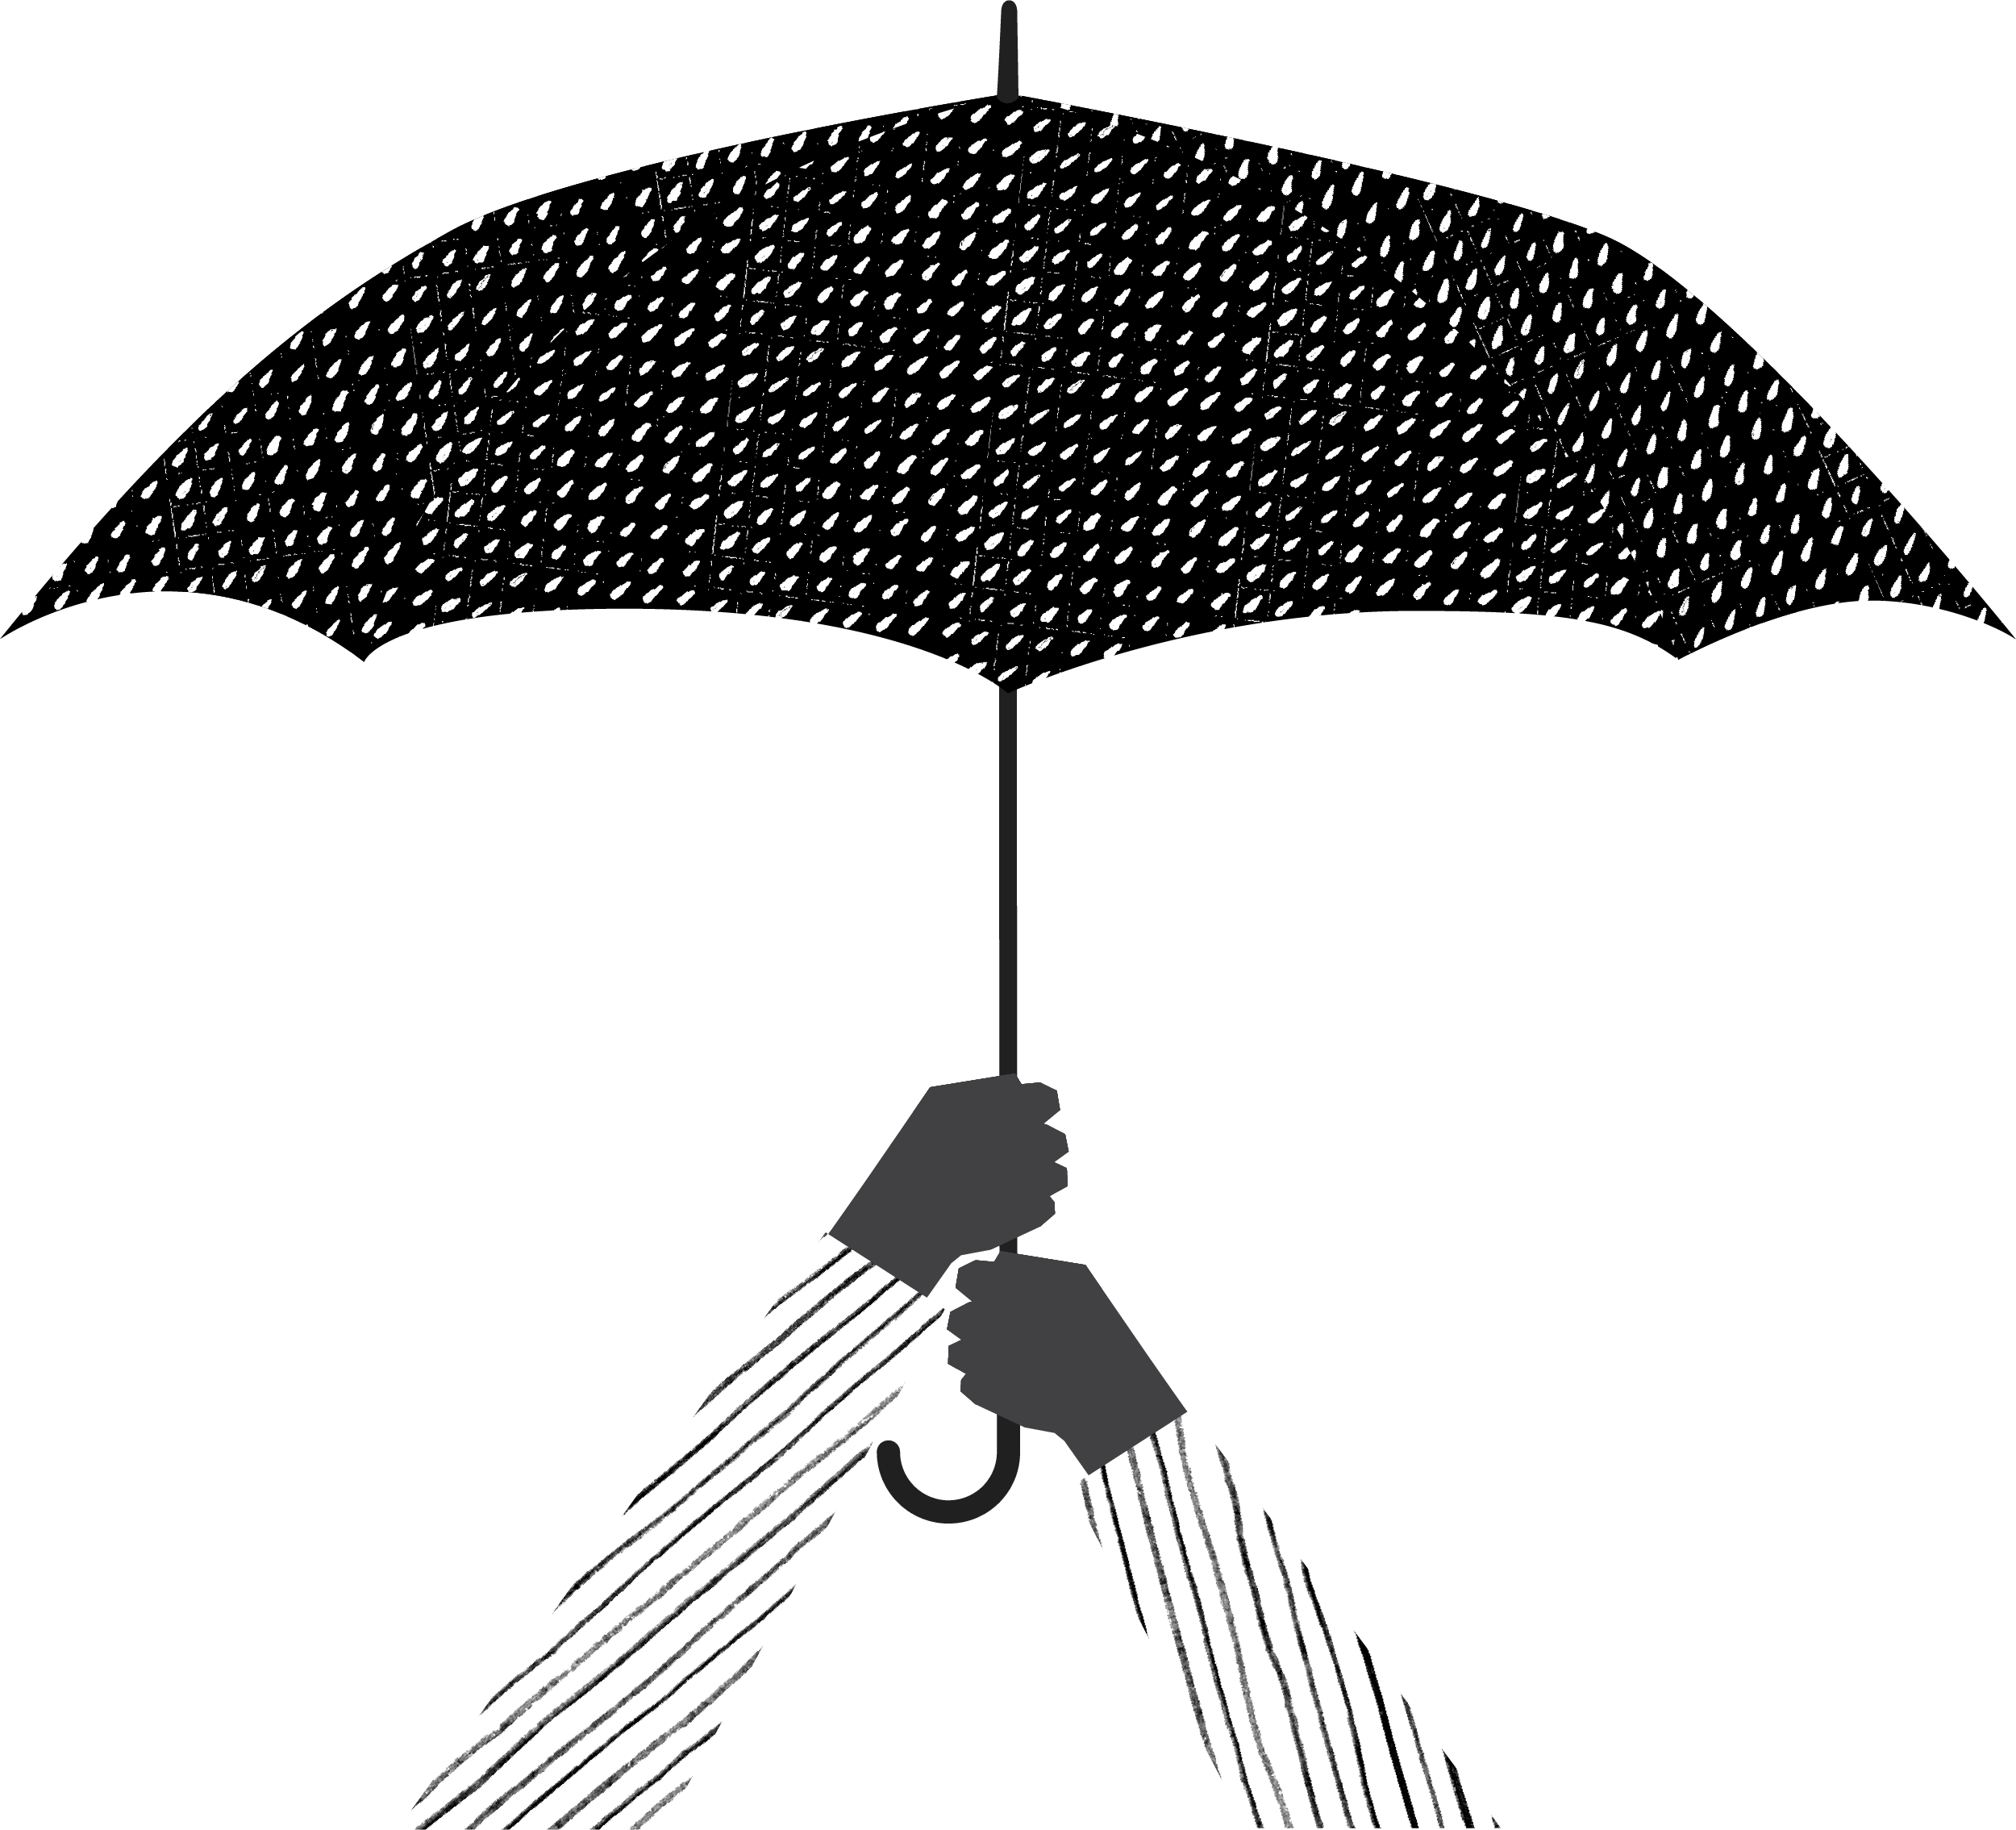 arms holding an umbrella